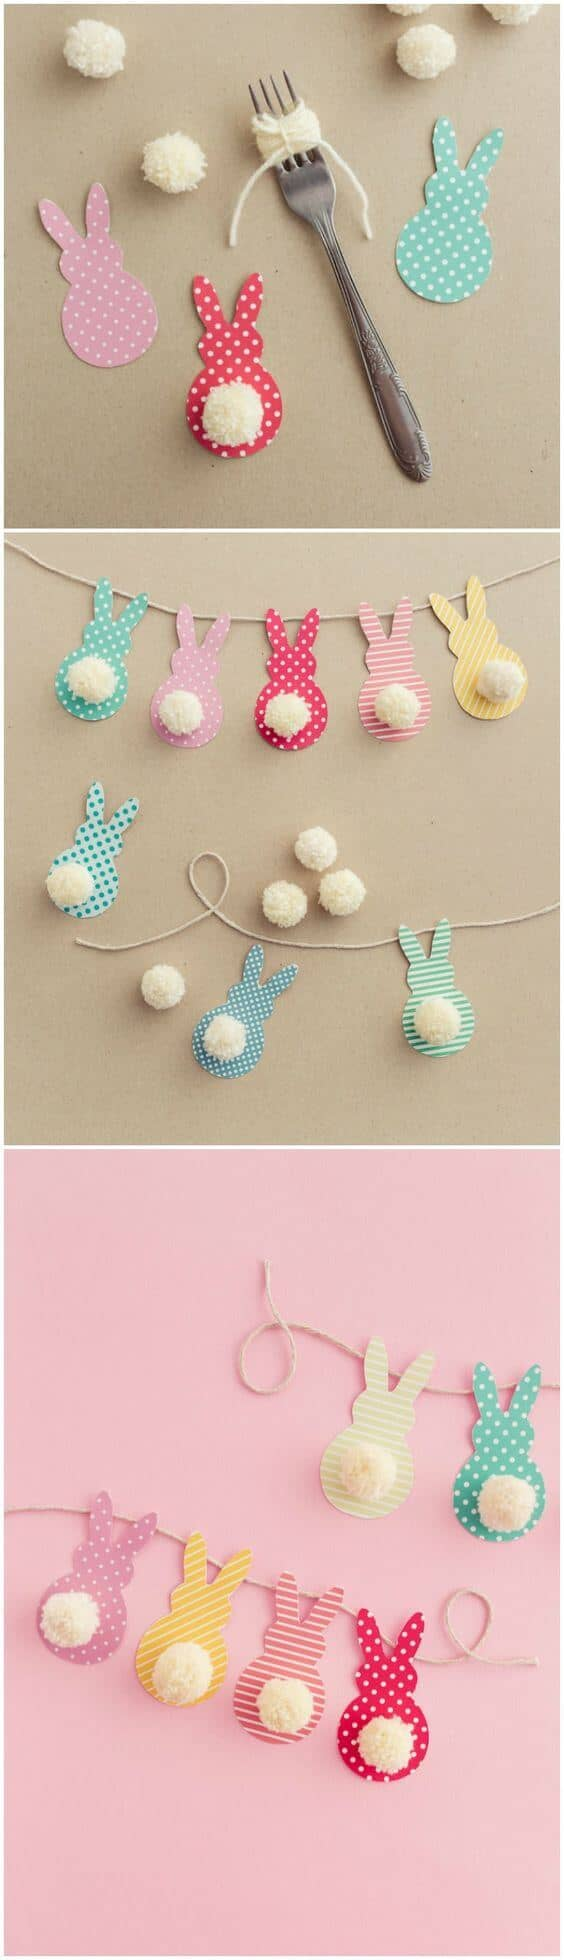 DIY Bushy-tailed Bunny Garland Easter Decoration